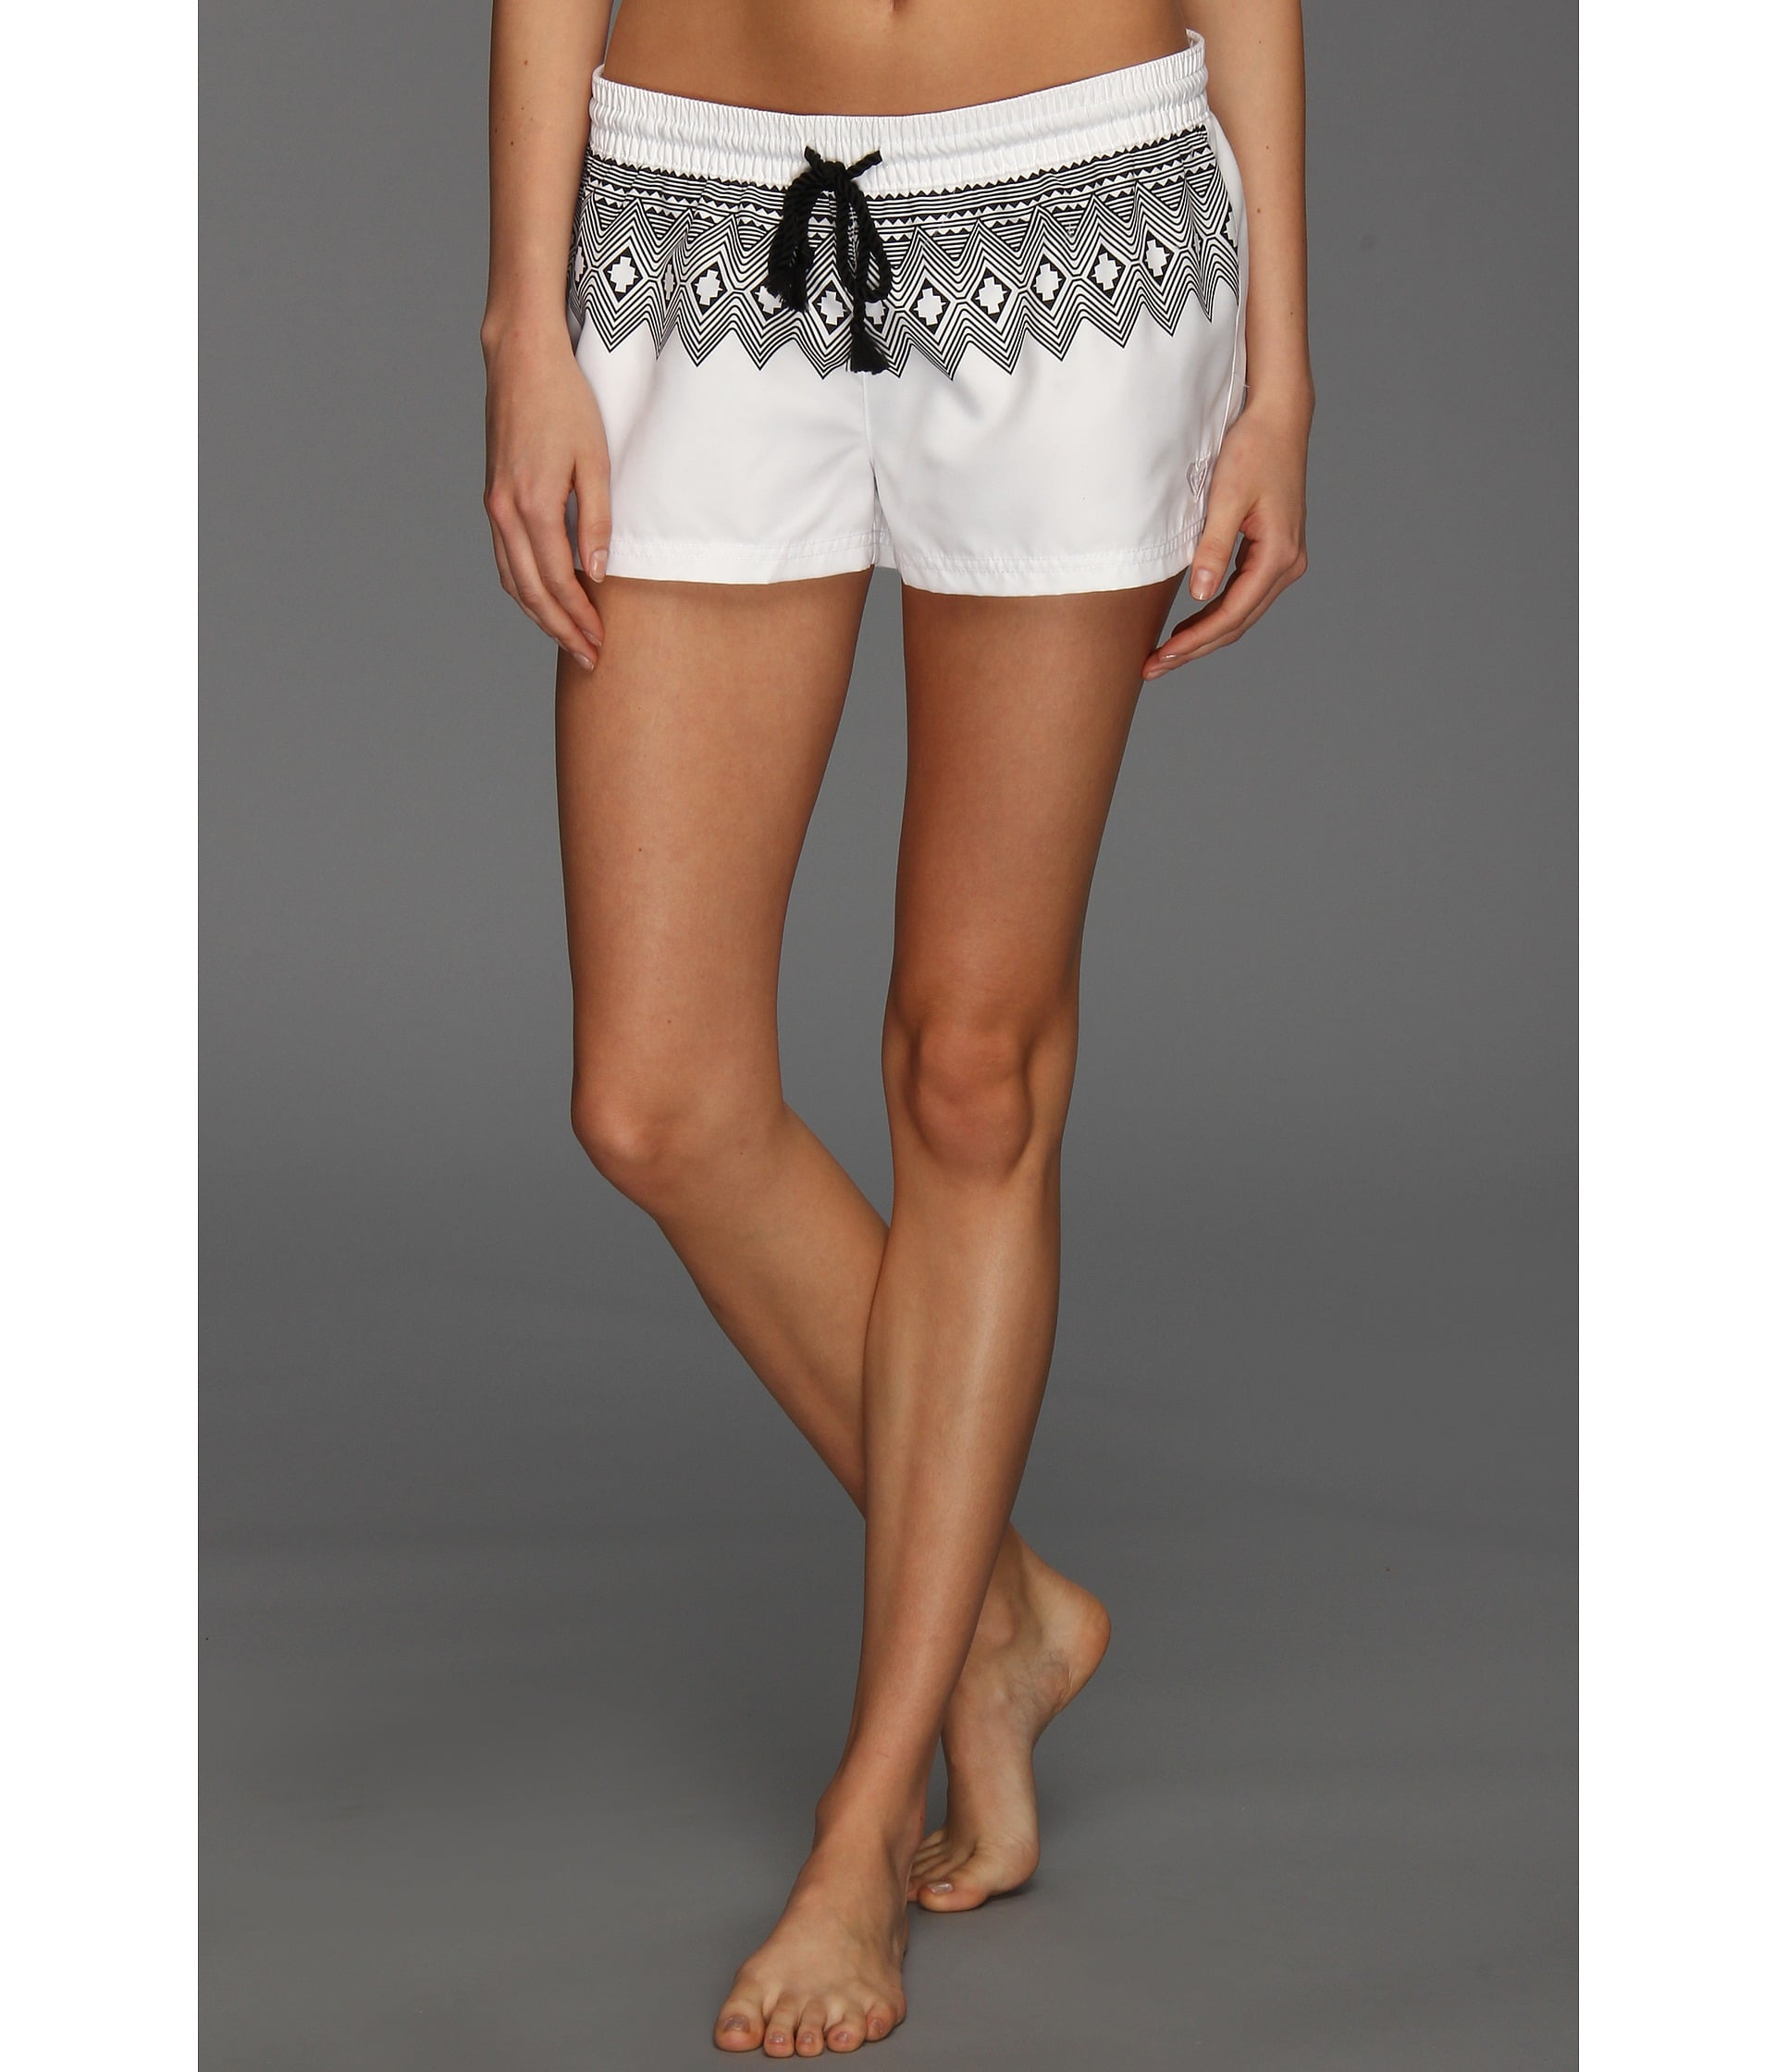 Roxy's black and white board shorts ($44) feature a chic print with a relaxed vibe — win, win.